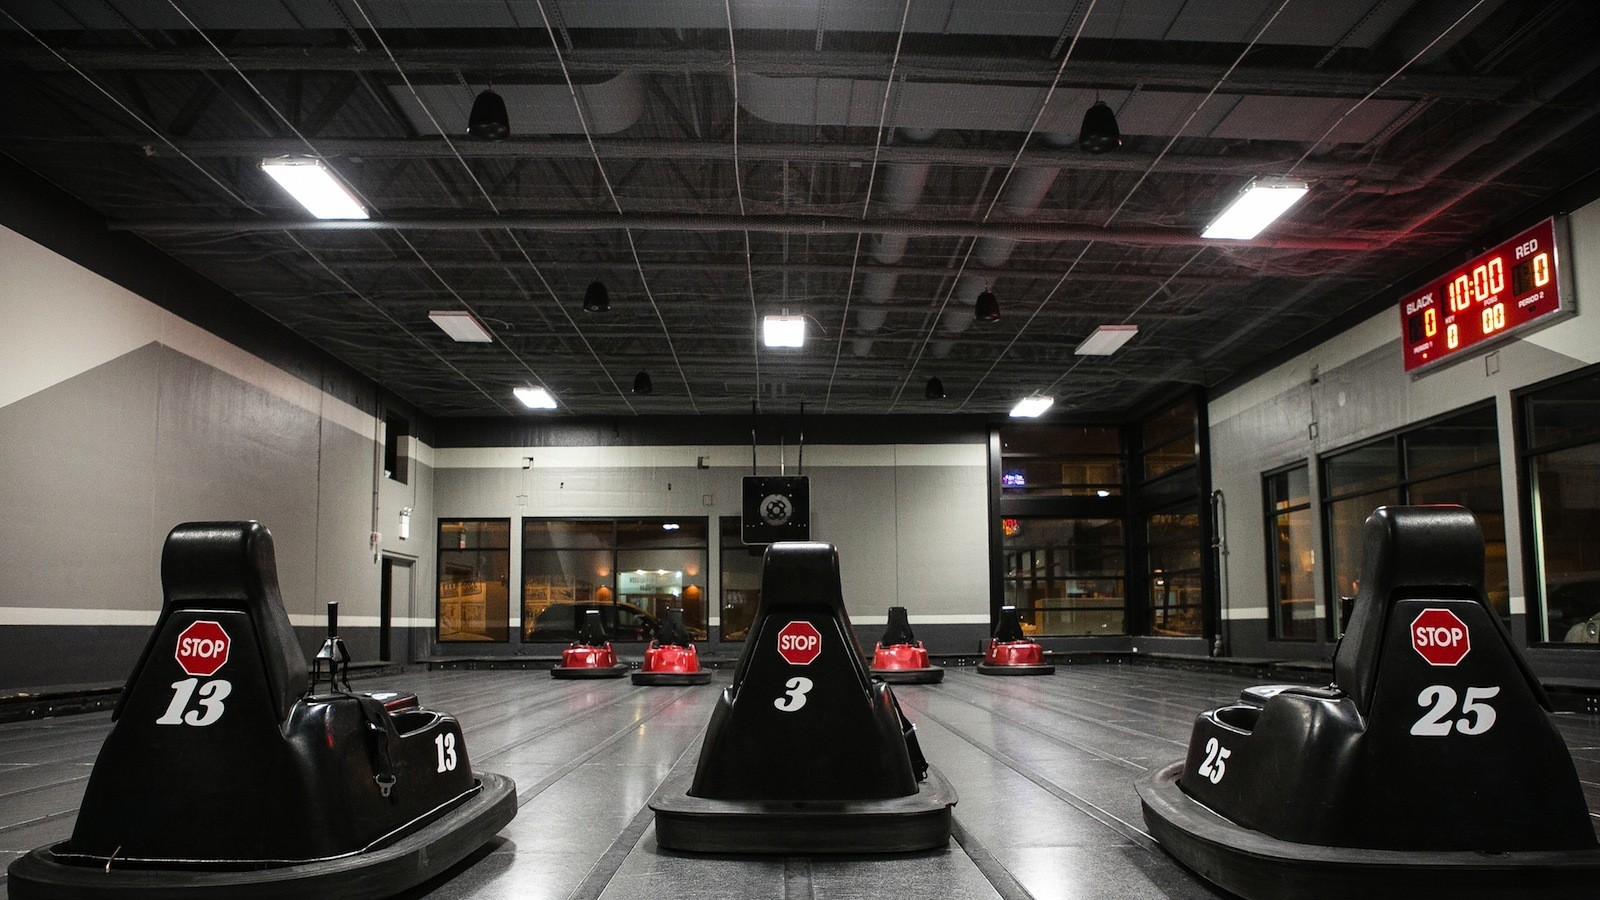 Meet WhirlyBall, The Goofy Lacrosse-In-Golf-Carts Sport That Wants To Take Over The World